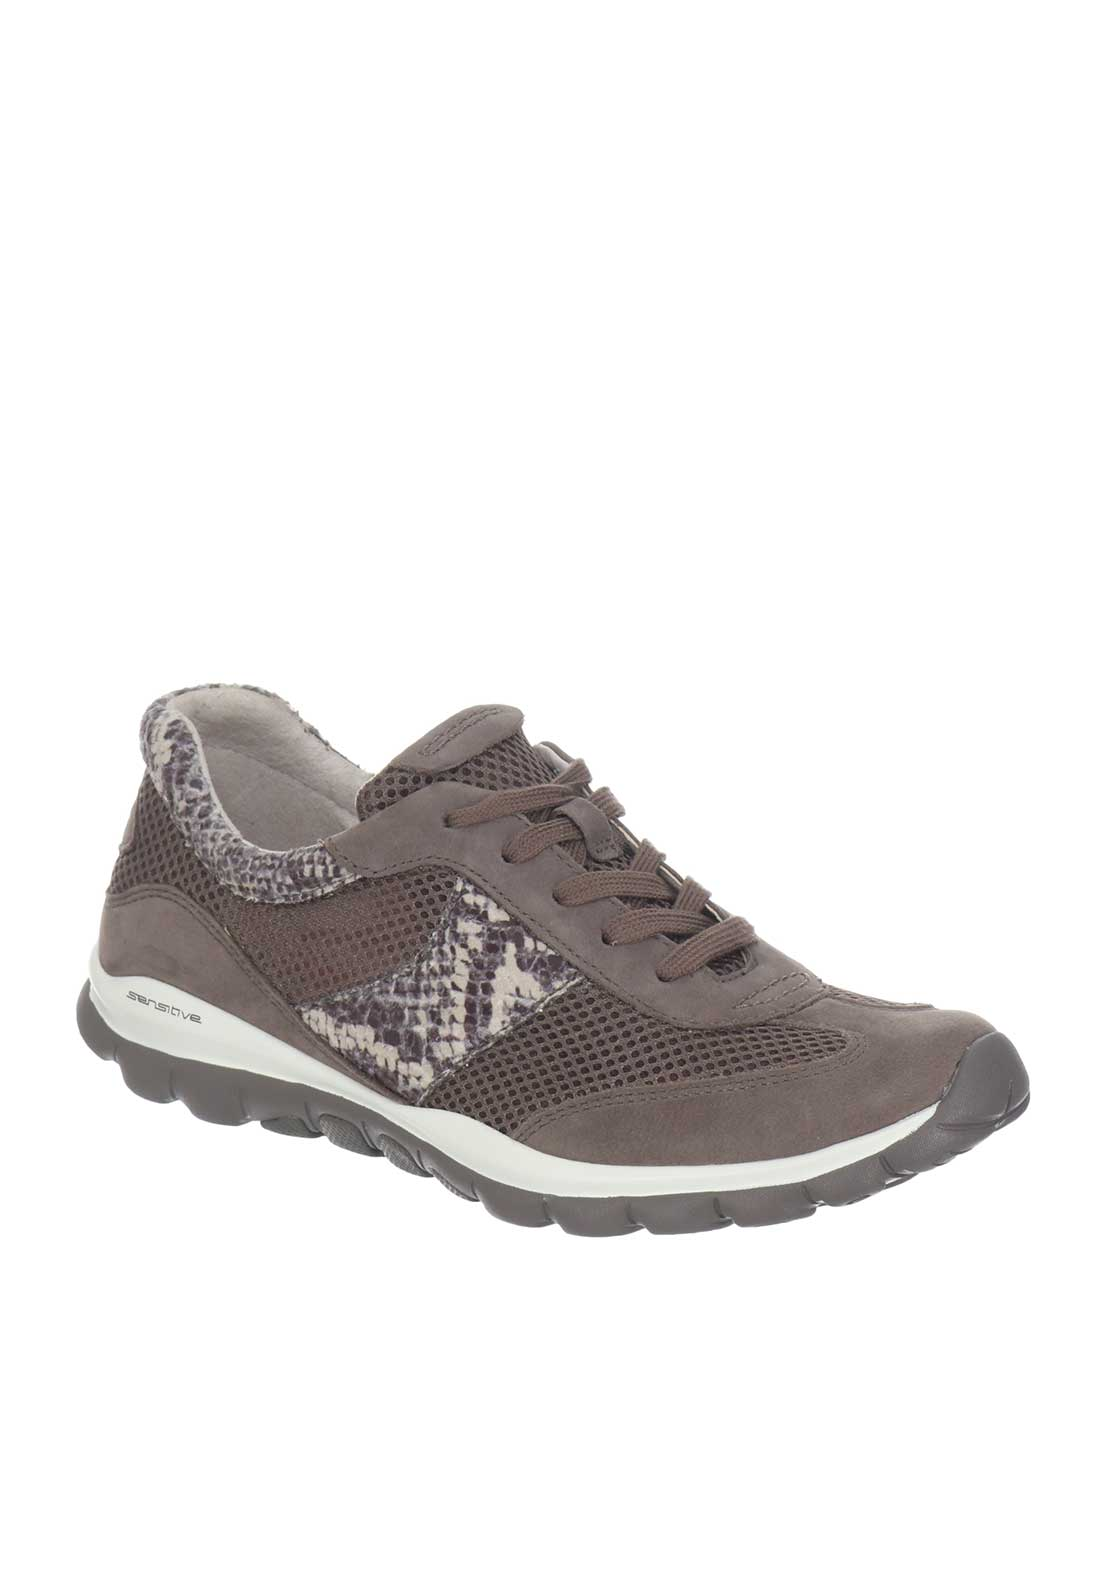 Gabor Soft Rolling Leather Mesh Laced Runners, Brown